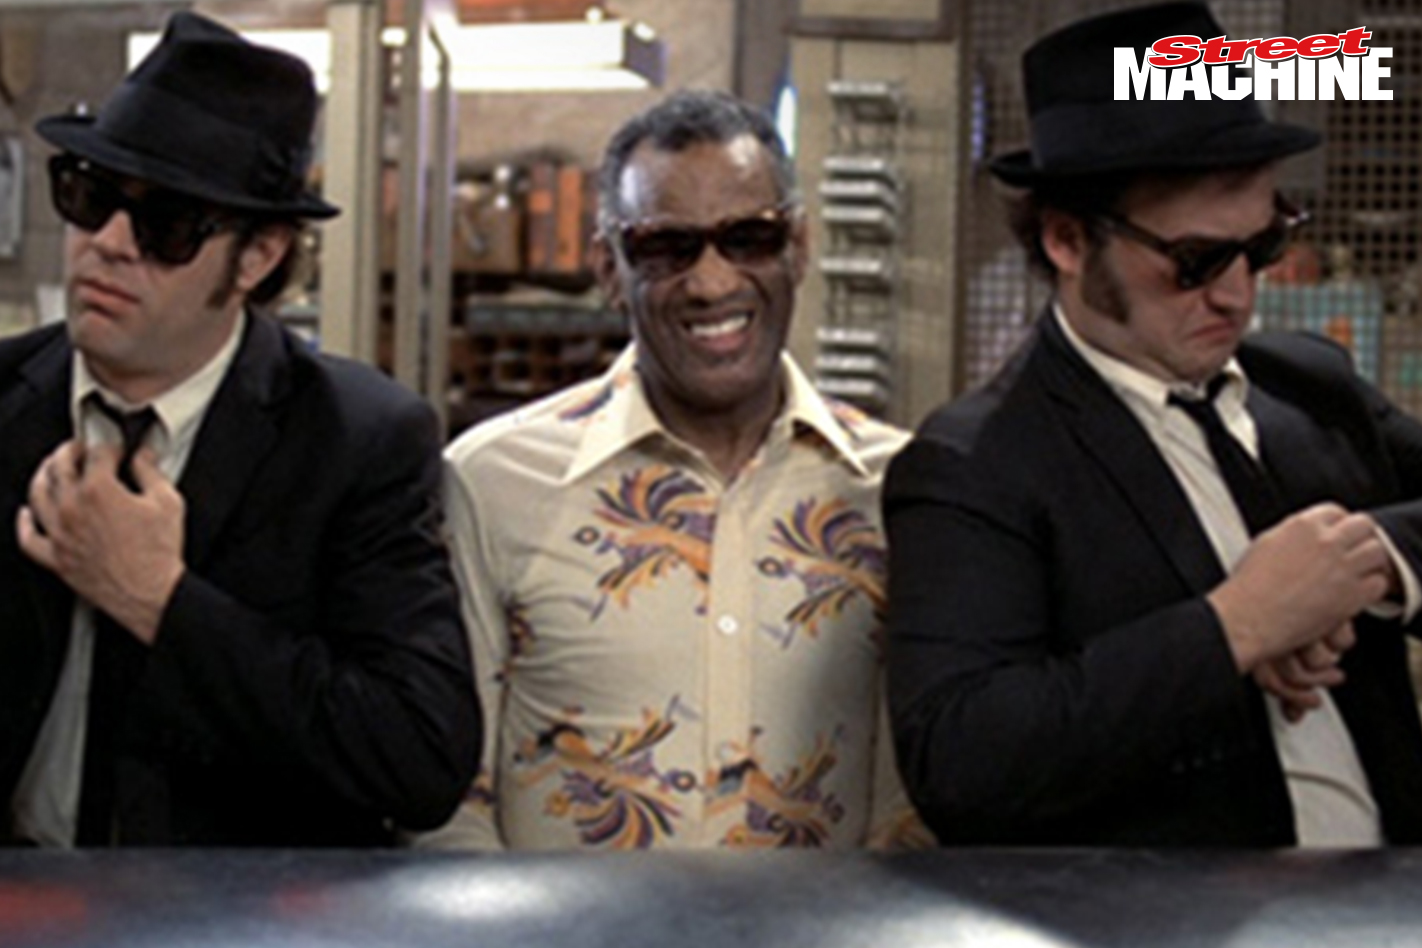 Blues Brothers 1980 1